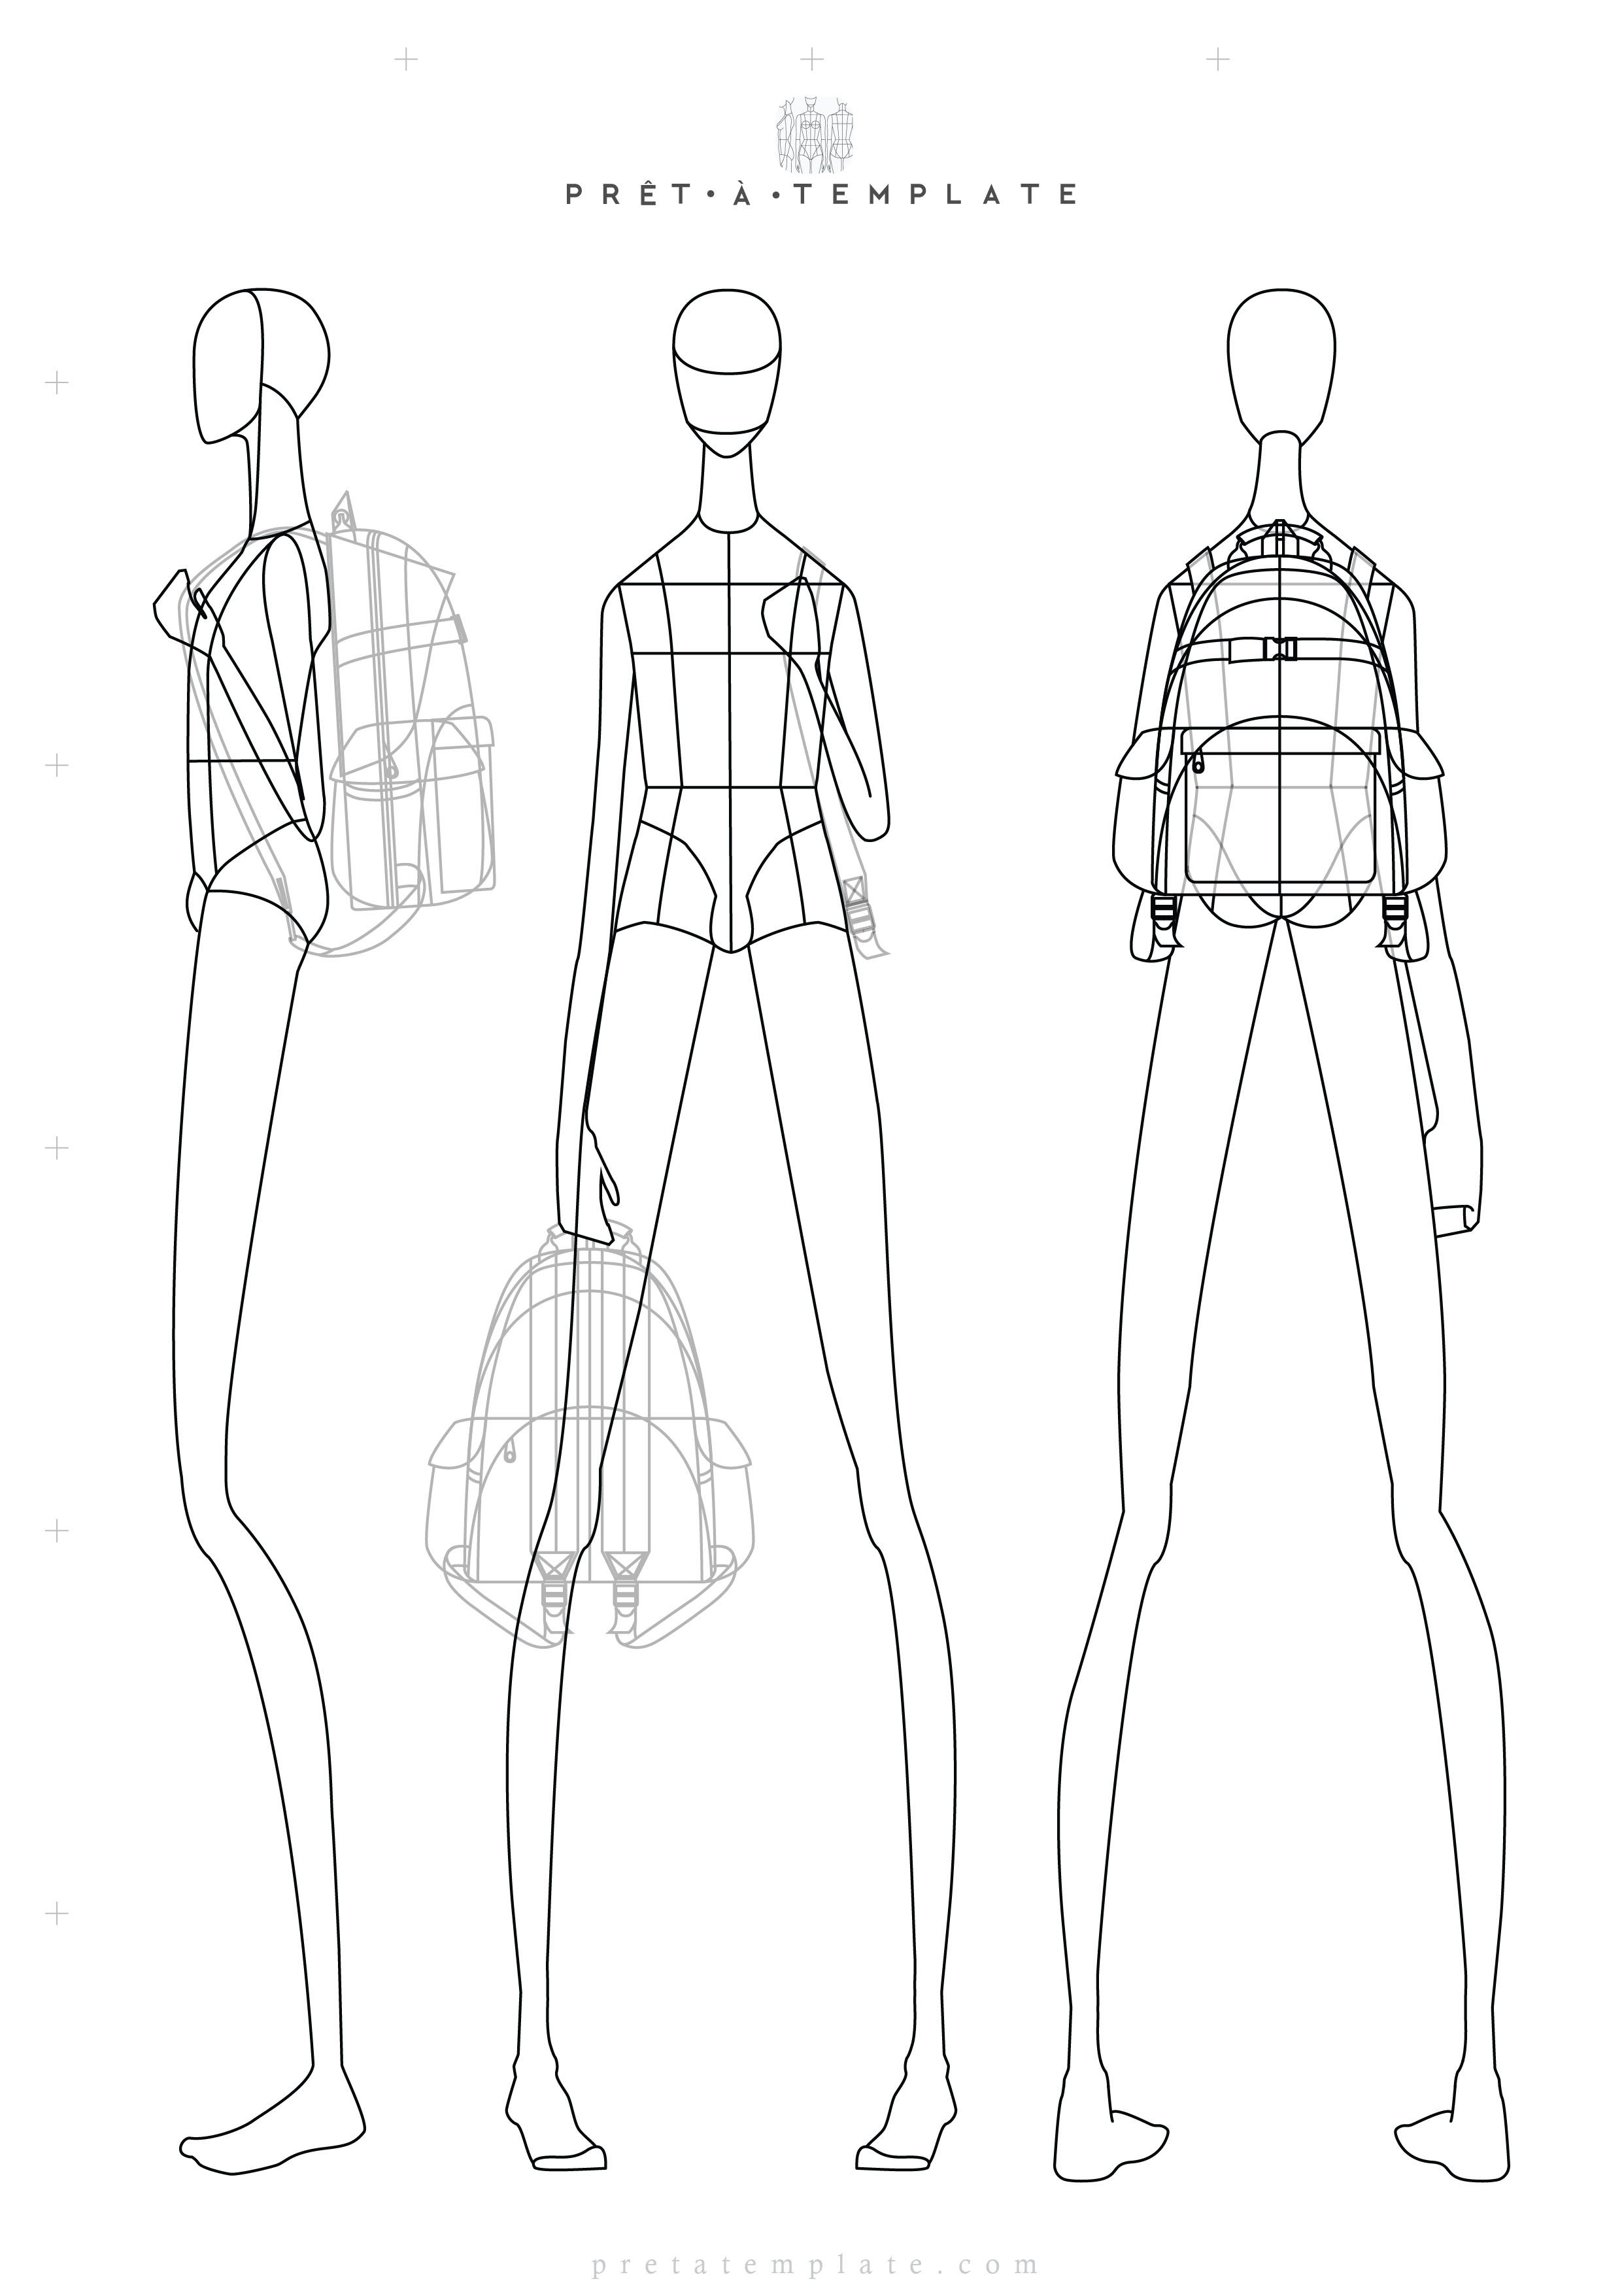 Man Croqui Body Figure Fashion Template D I Y Your Own